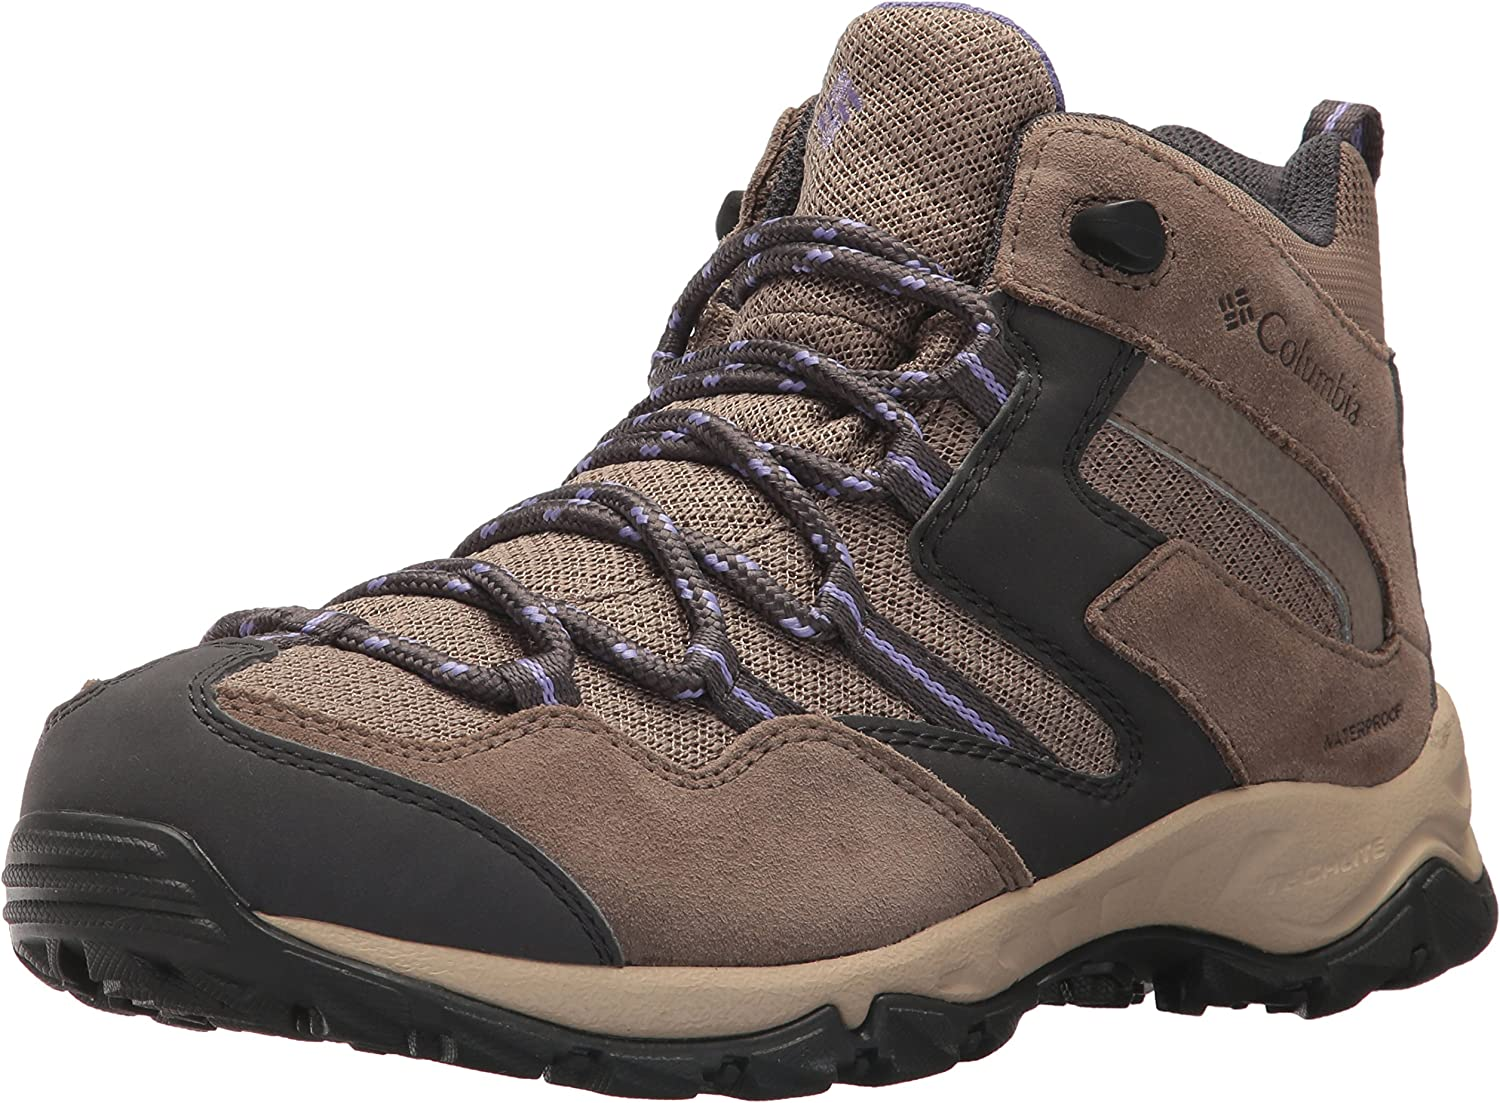 Columbia Woherren Maiden Peak Waterproof Mid Calf Stiefel, Wet Sand, lila Aster, 5 Regular US